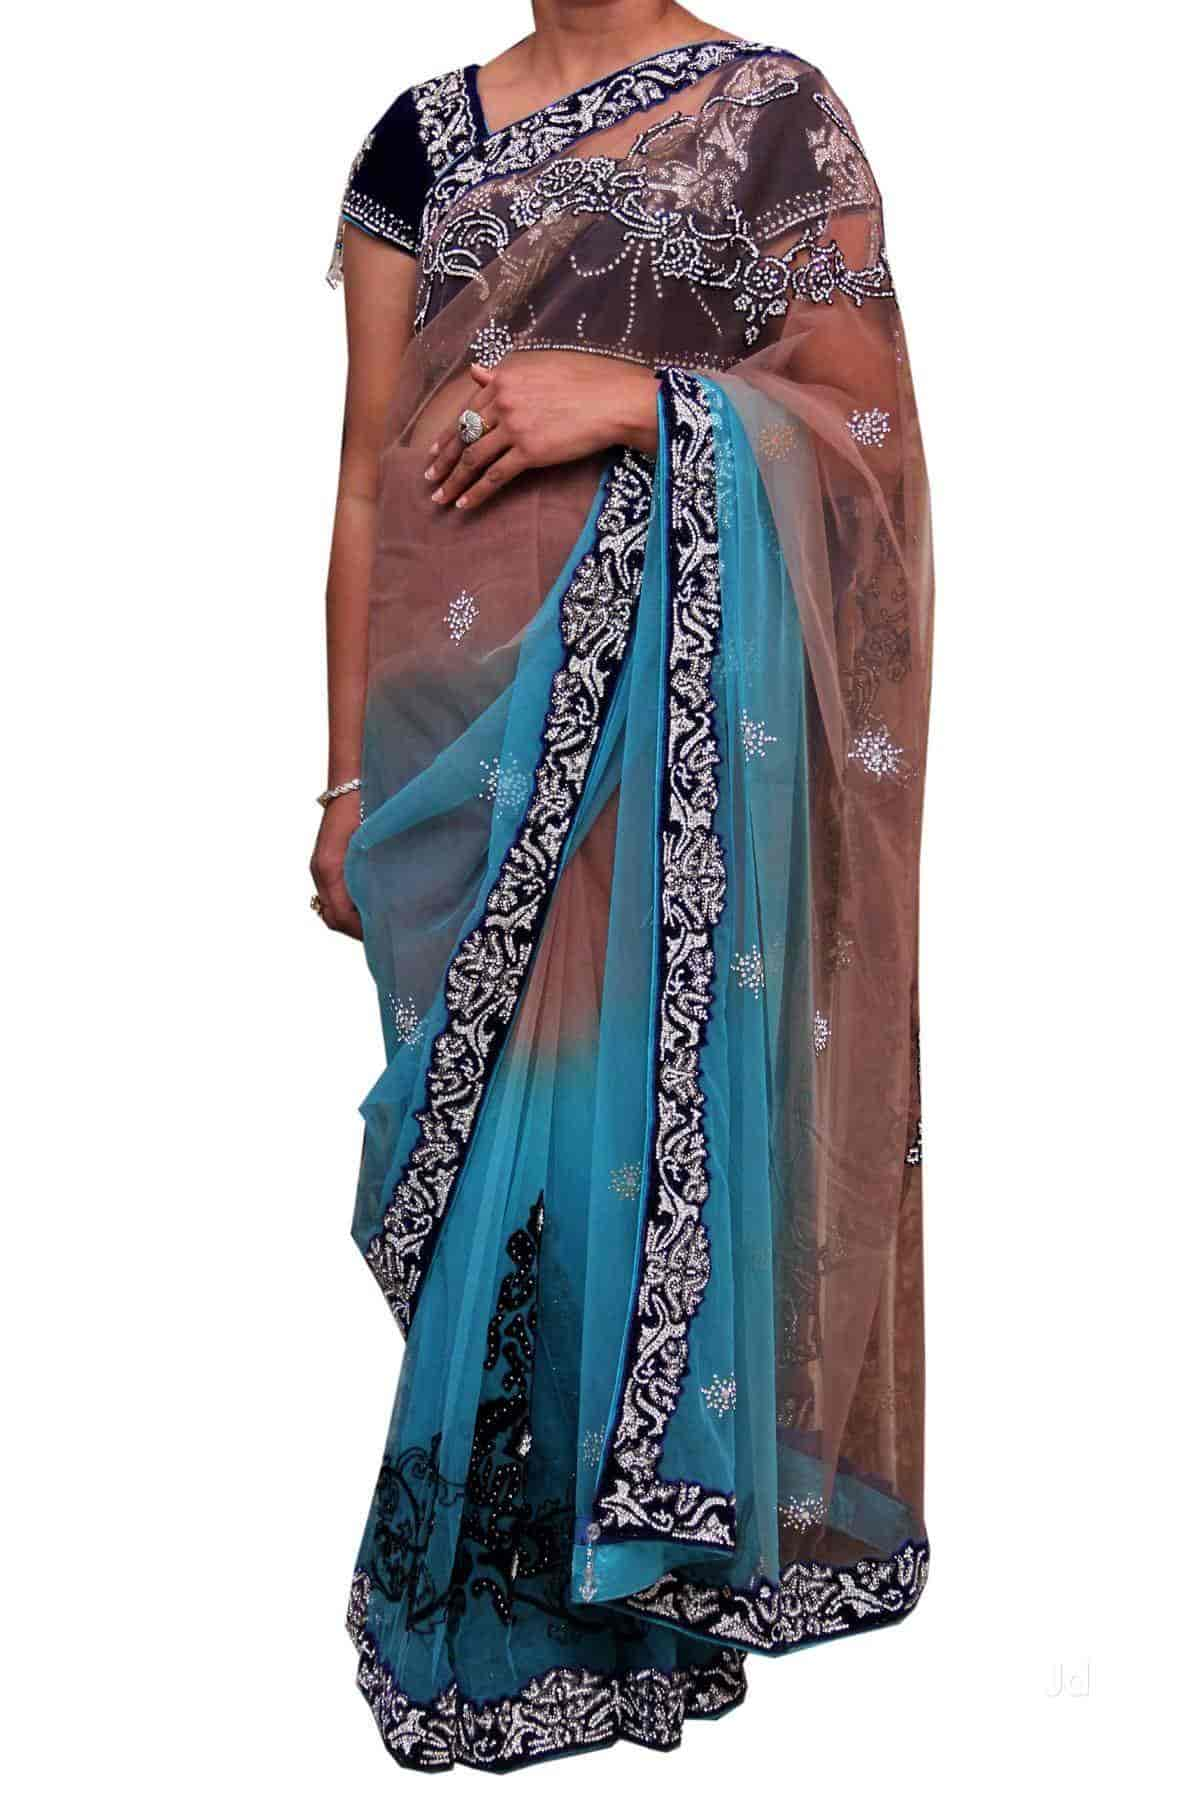 Rocking Rental, Sector 35d - Wedding Sarees On Hire in Chandigarh ...